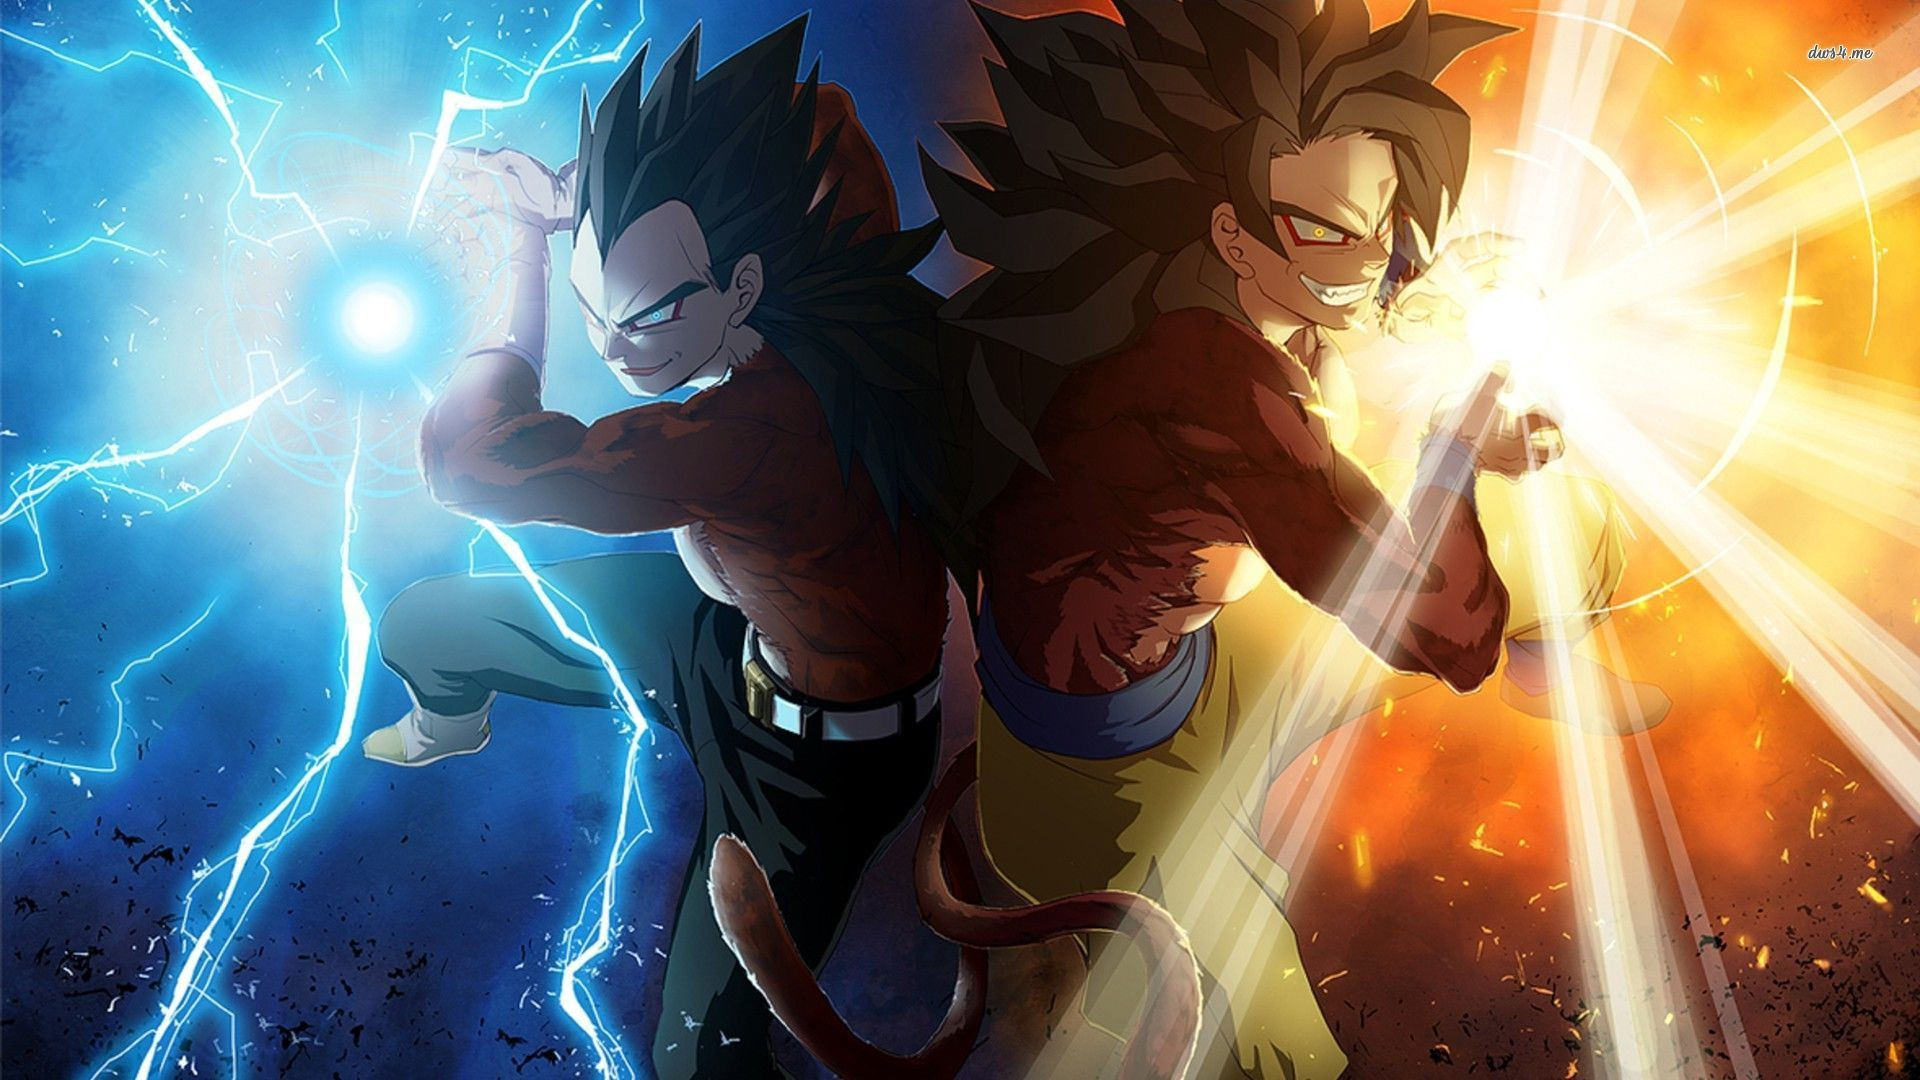 Dragon Ball Z 3d Wallpapers Group Goku Ssj4 Wallpaper Pc 50003